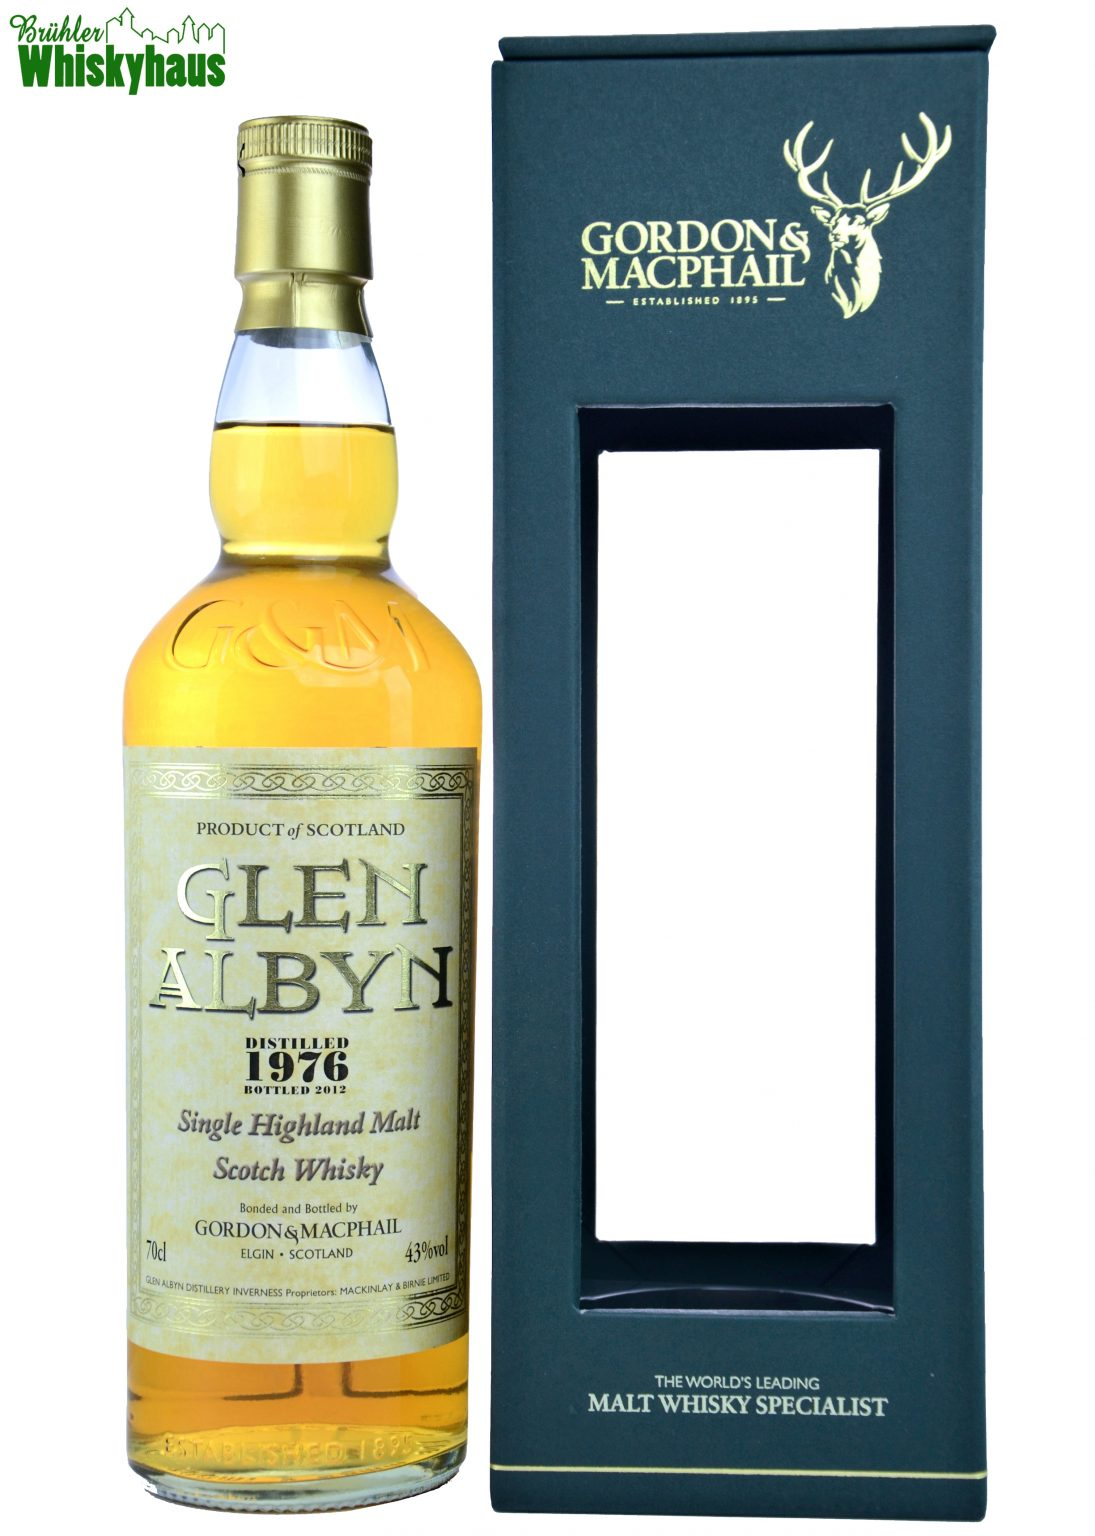 Glen Albyn Vintage 1976 - 35 Jahre - Refill Sherry Cask - Gordon & MacPhail - Single Malt Scotch Whisky